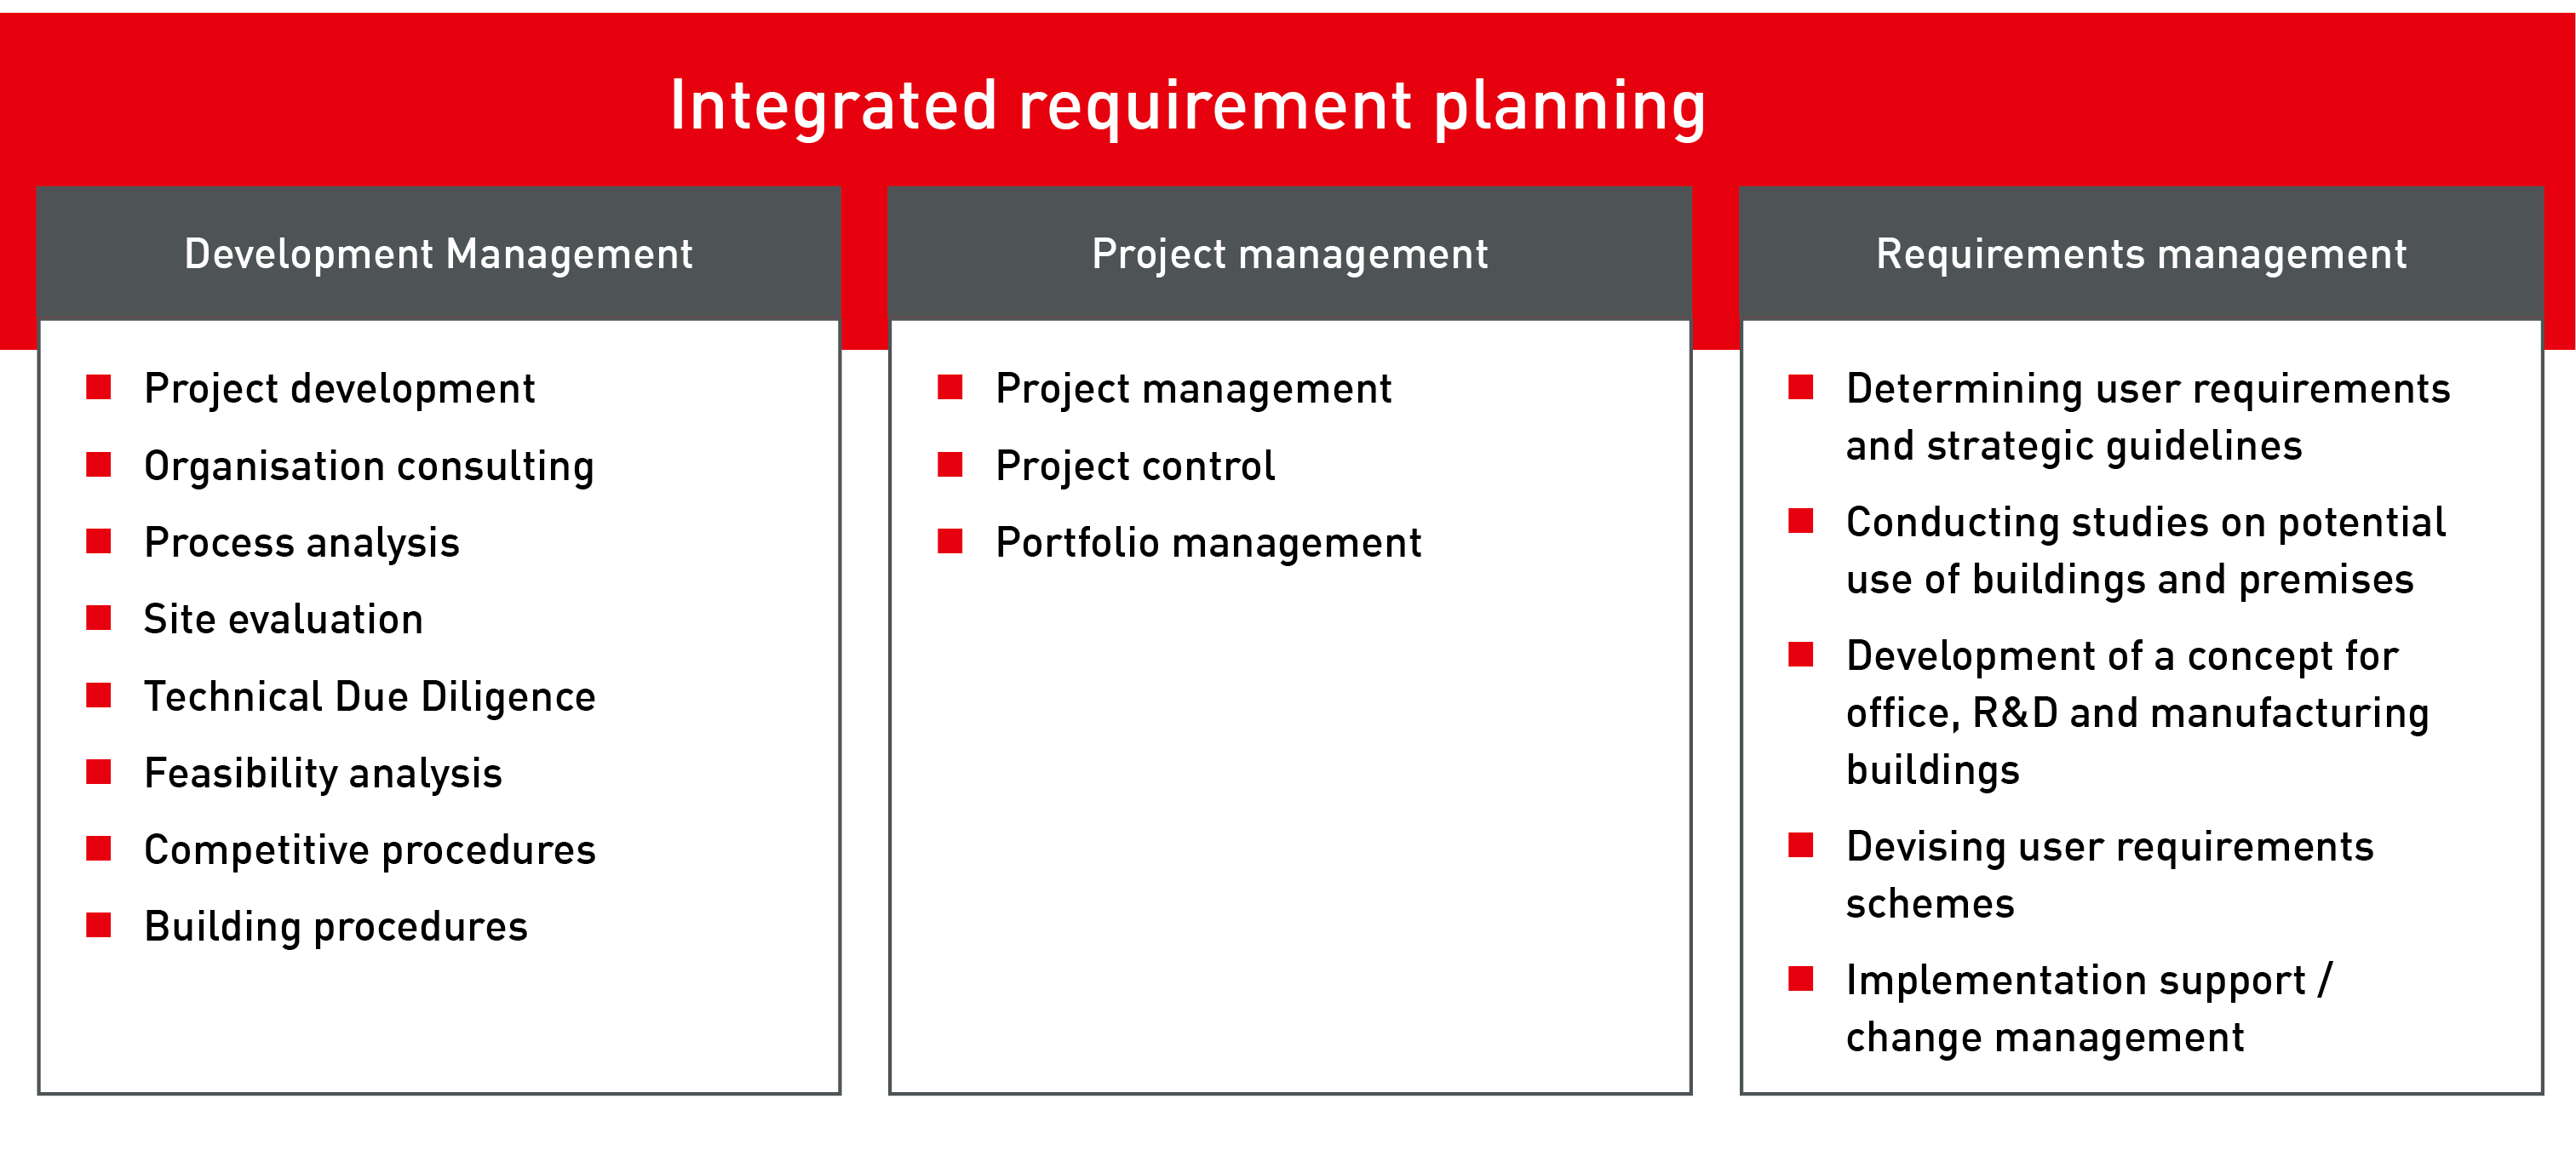 Integrated Requirements Management - What is requirements management